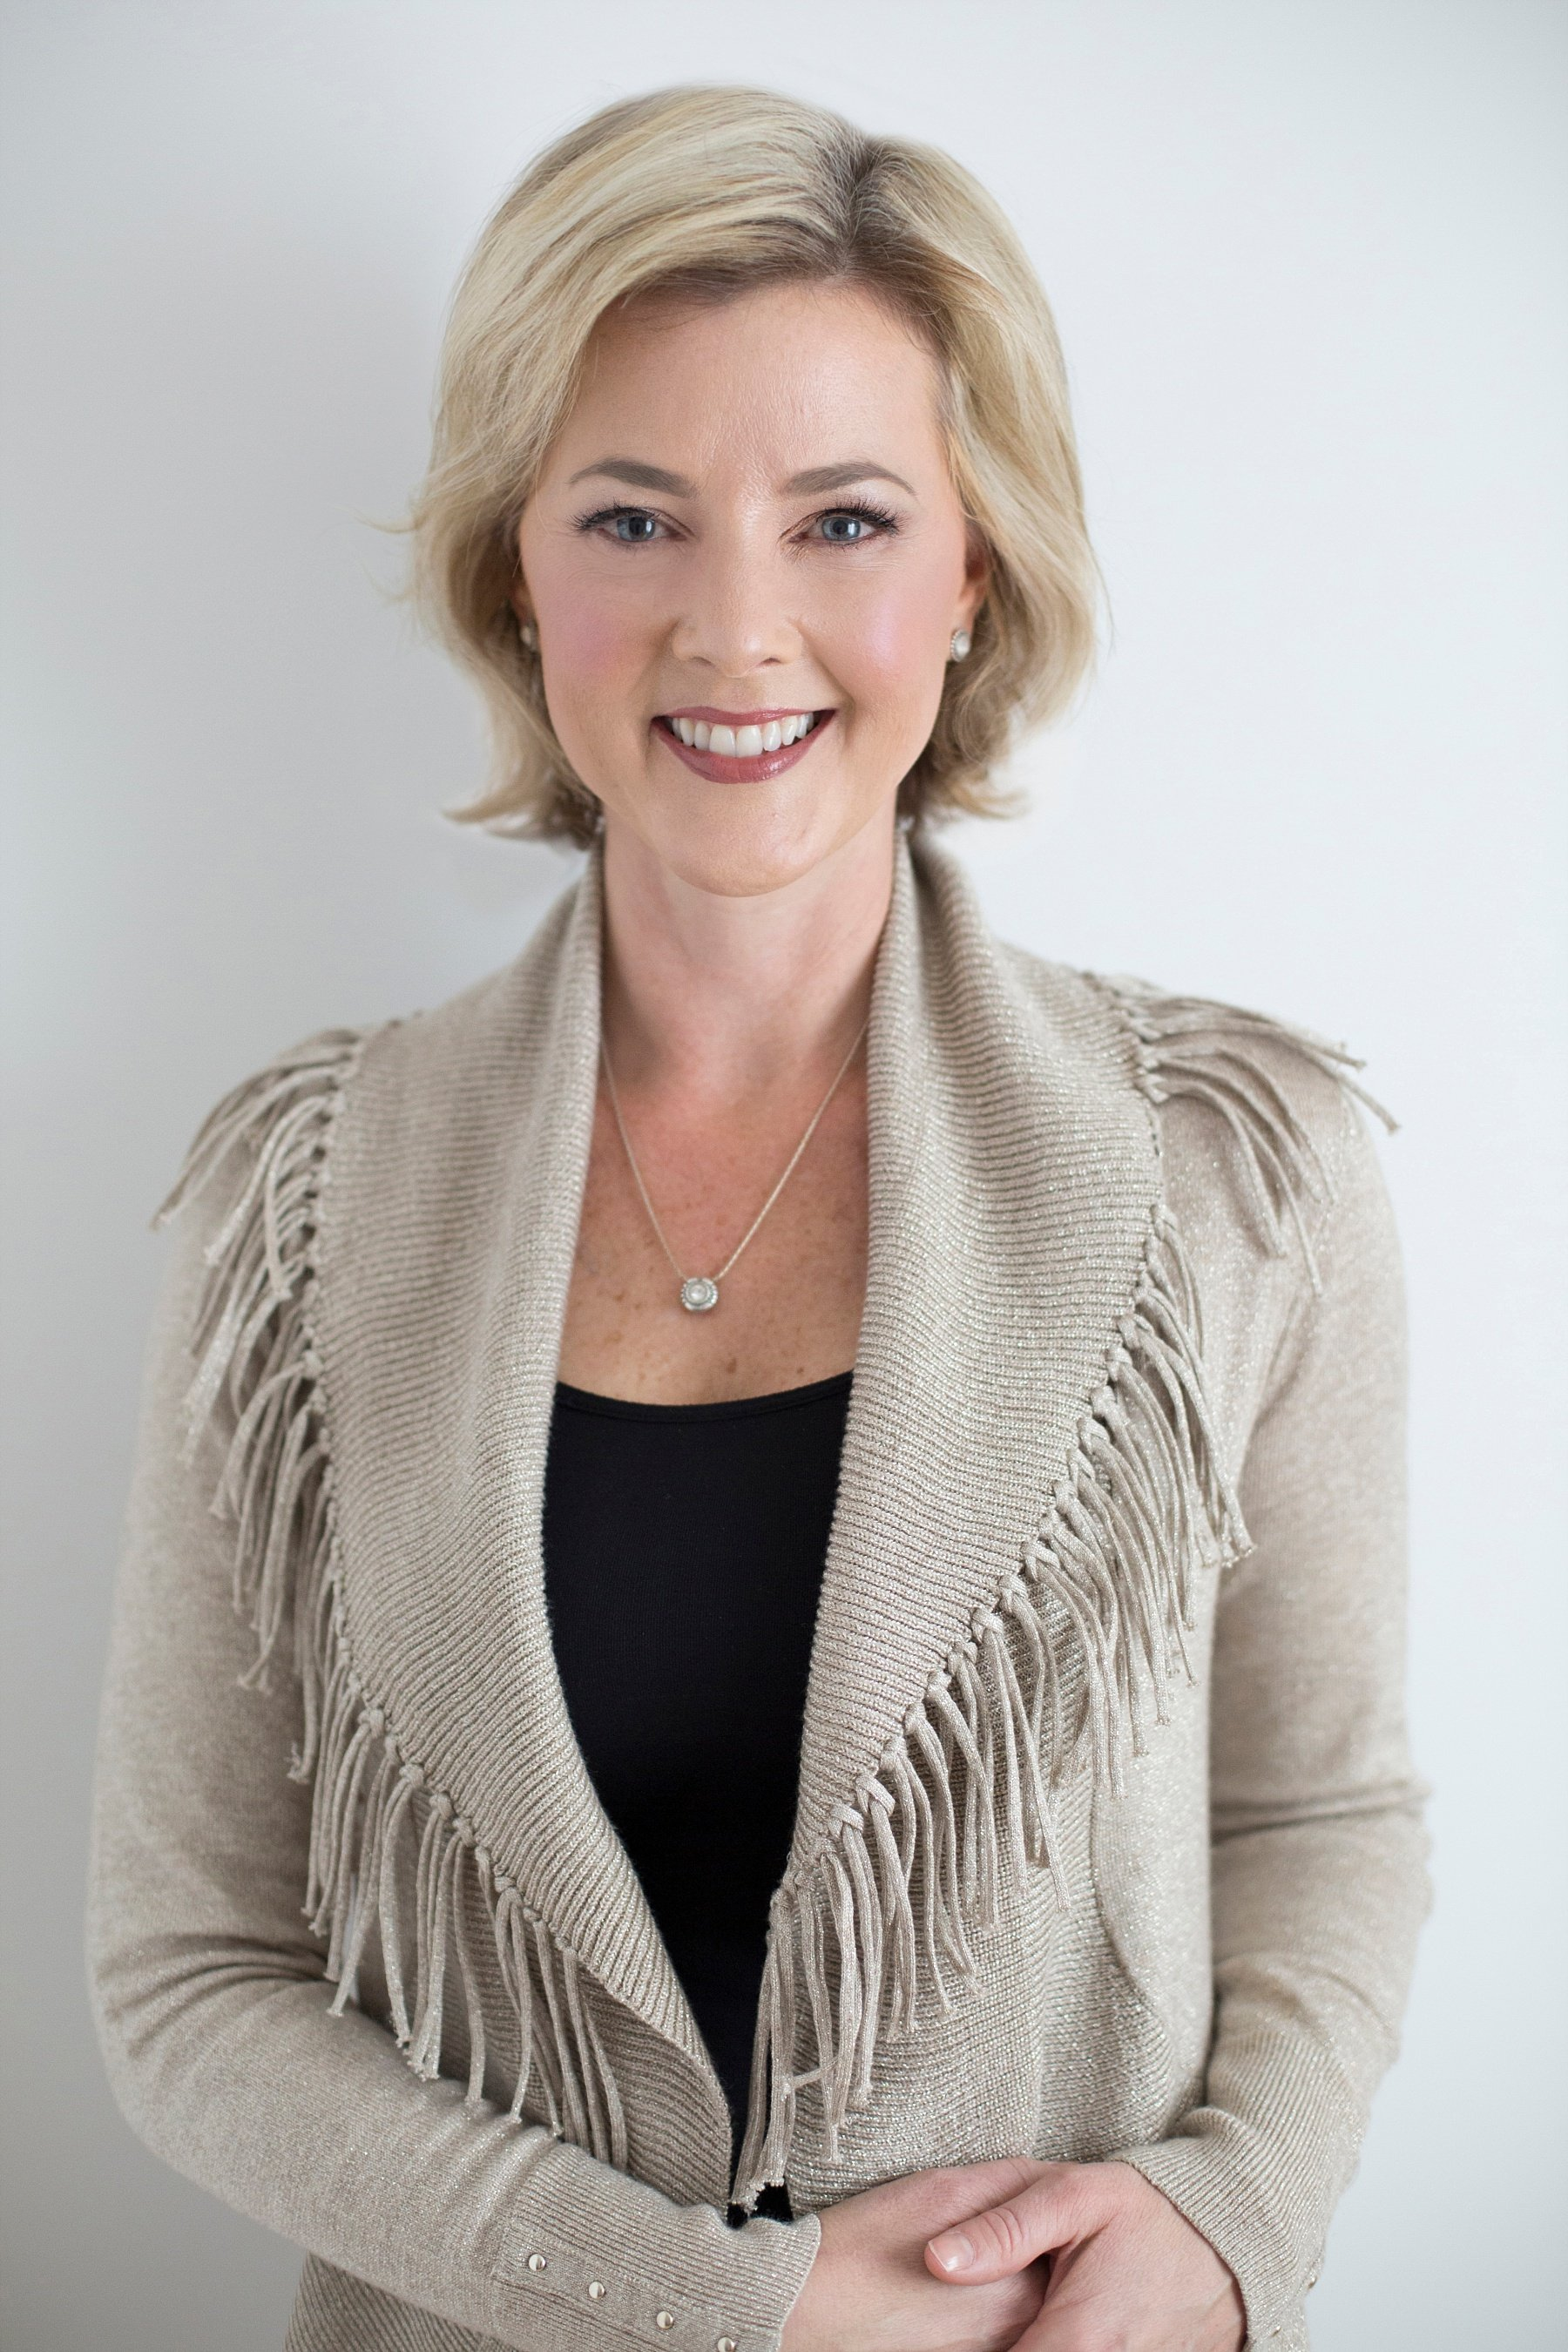 Allison Dunn in a tan sweater smiling as she poses with both hands placed on her left hip.